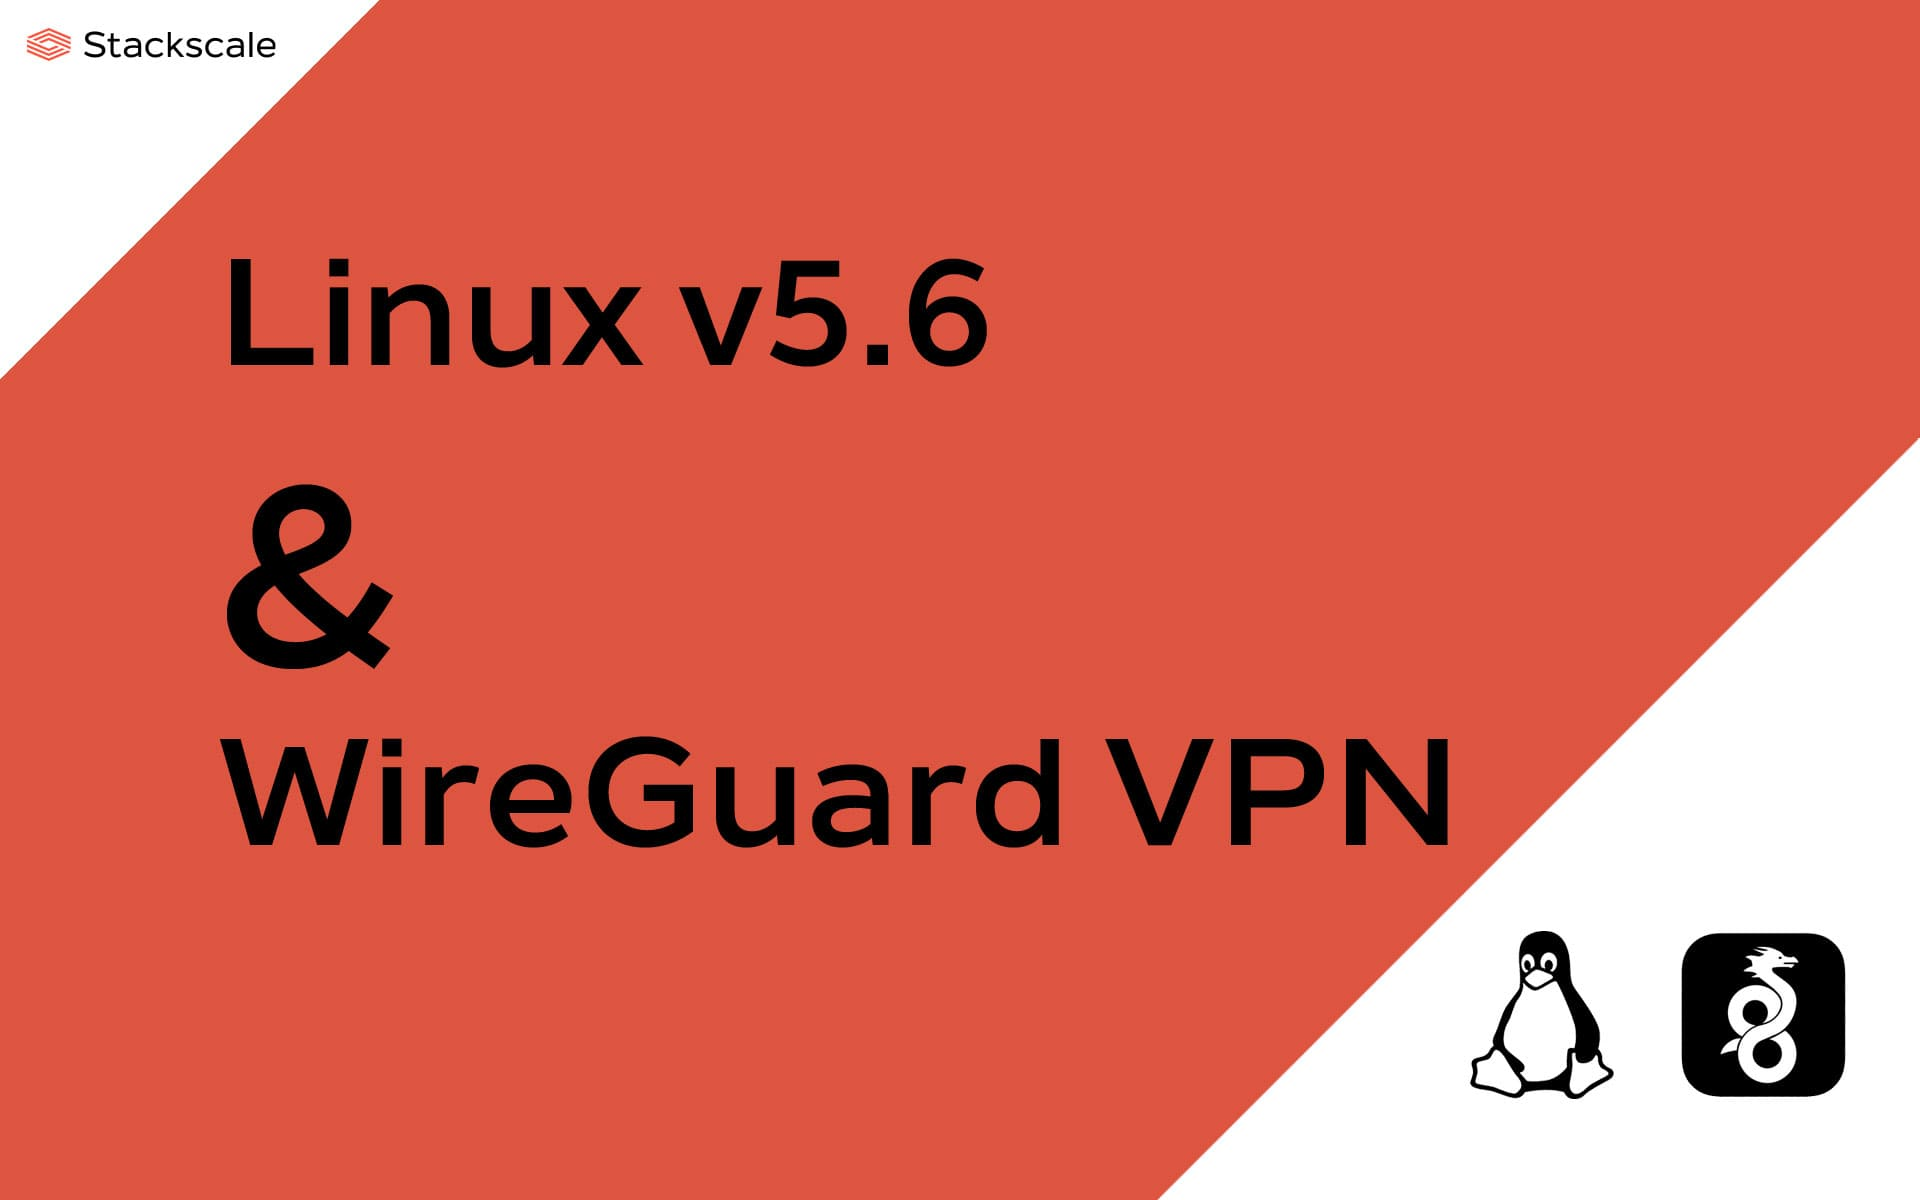 WireGuard VPN will be in Linux v5.6